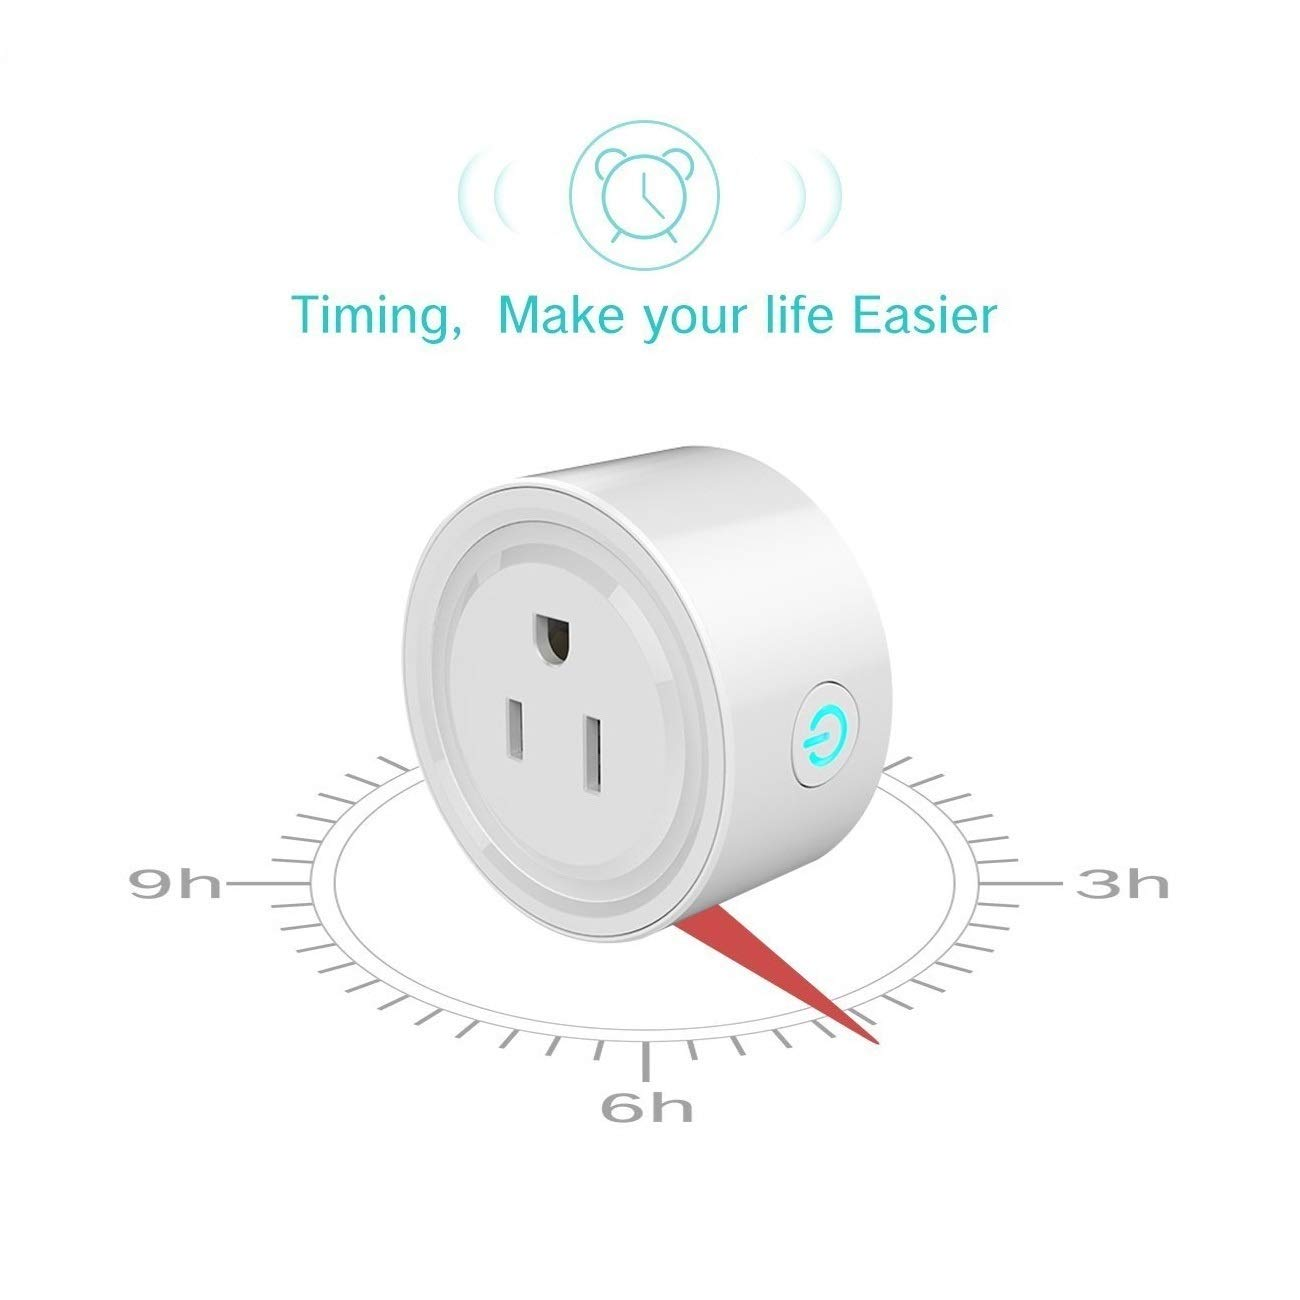 Mini Smart Socket Wifi Plug US Work with Alexa Echo Dot Voice Control No Hub Required Timing Function (2 Pack) by EVO-SMART (Image #6)